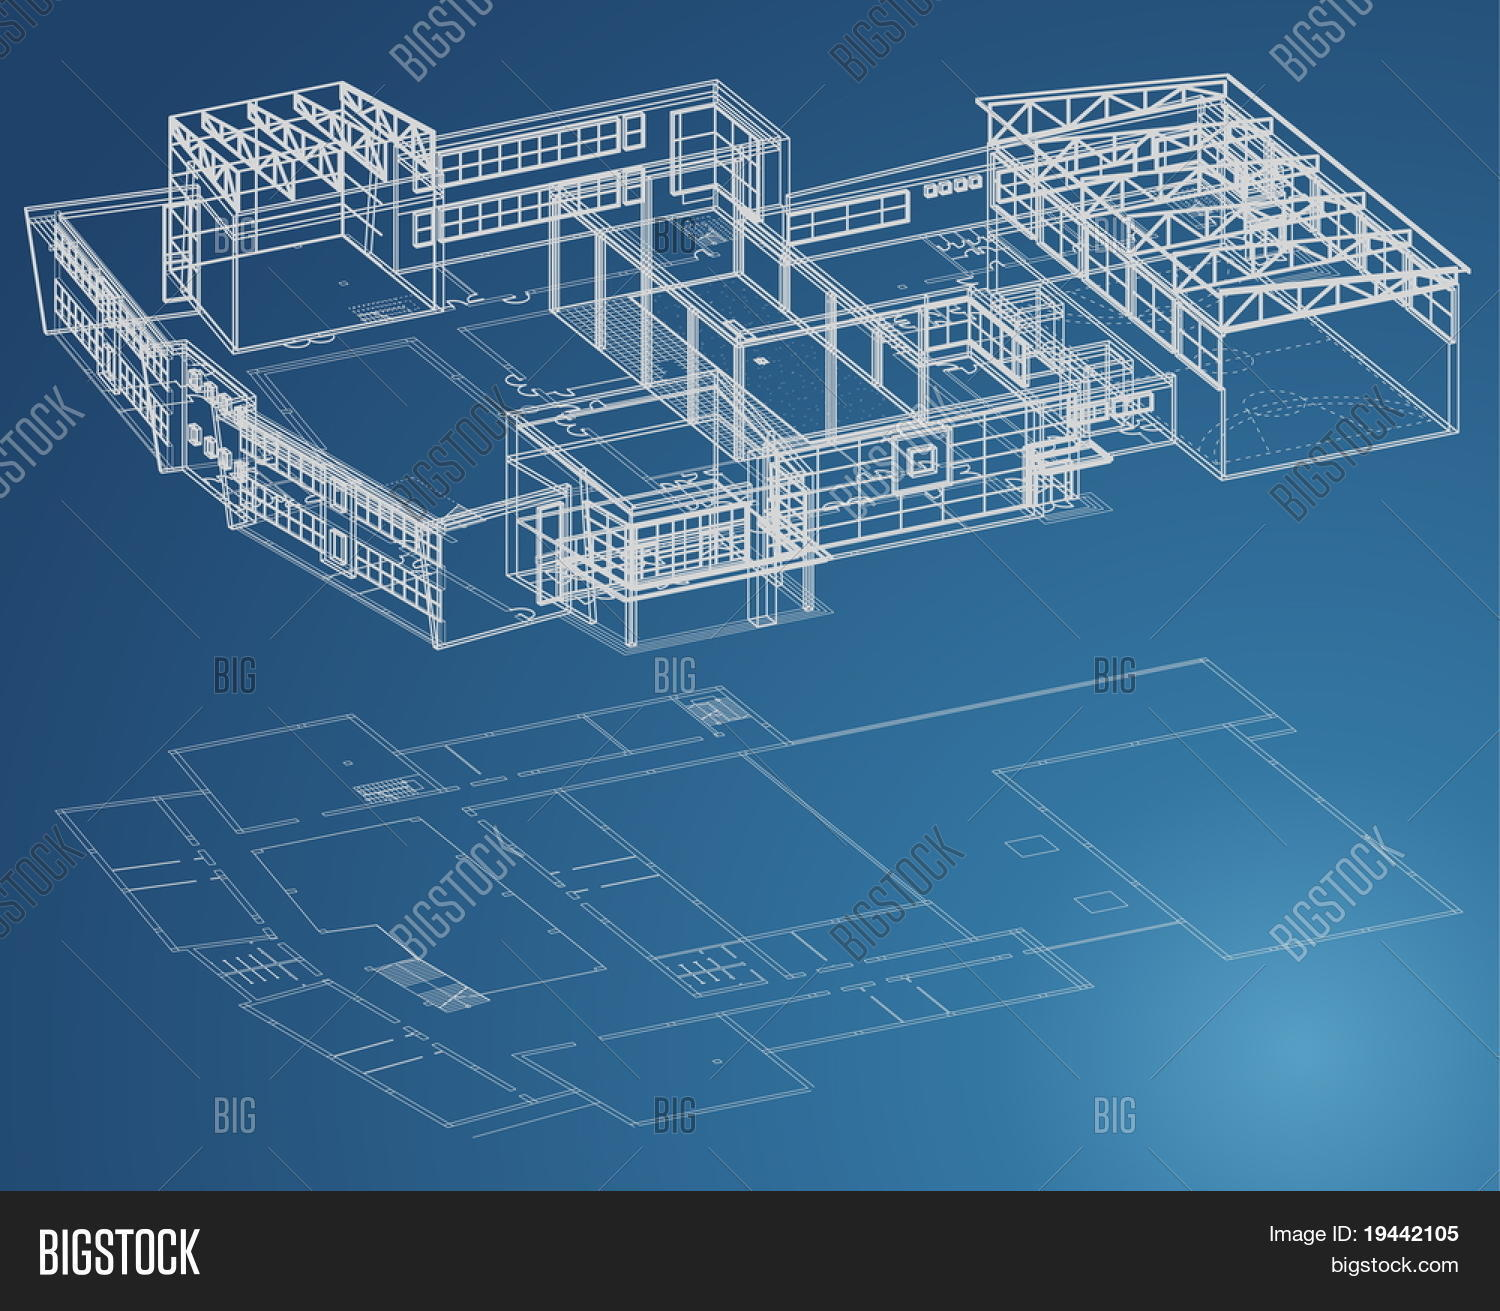 Blueprint plan school vector photo free trial bigstock blueprint plan of school building in third view and basic malvernweather Choice Image